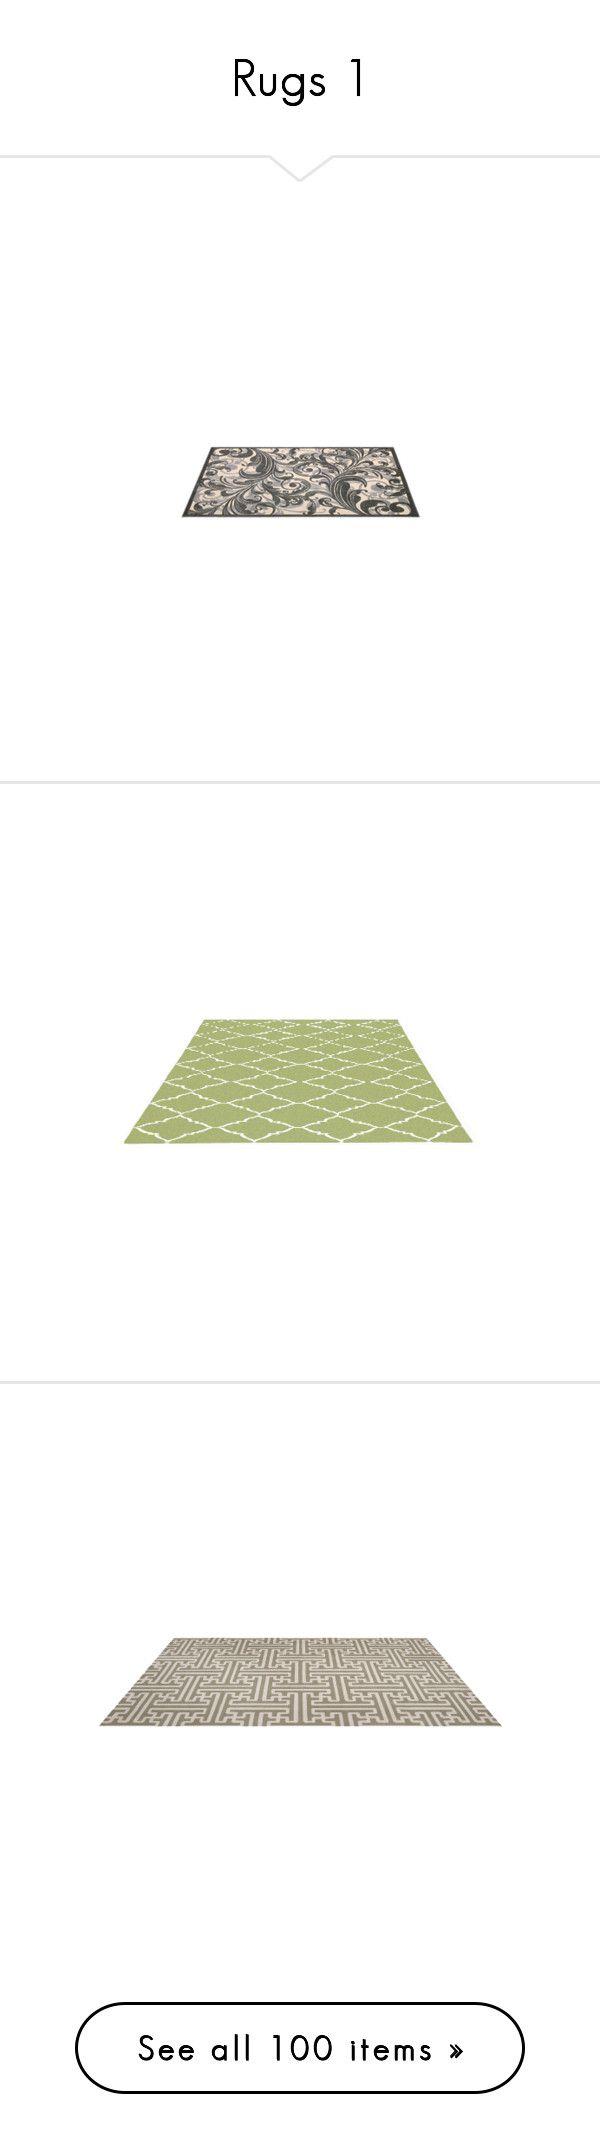 """""""Rugs 1"""" by thalassy ❤ liked on Polyvore featuring rugs, home, flat woven area rugs, mint green rug, wool rugs, light green area rug, flatwoven rug, floors, tapetes and flatweave rugs"""